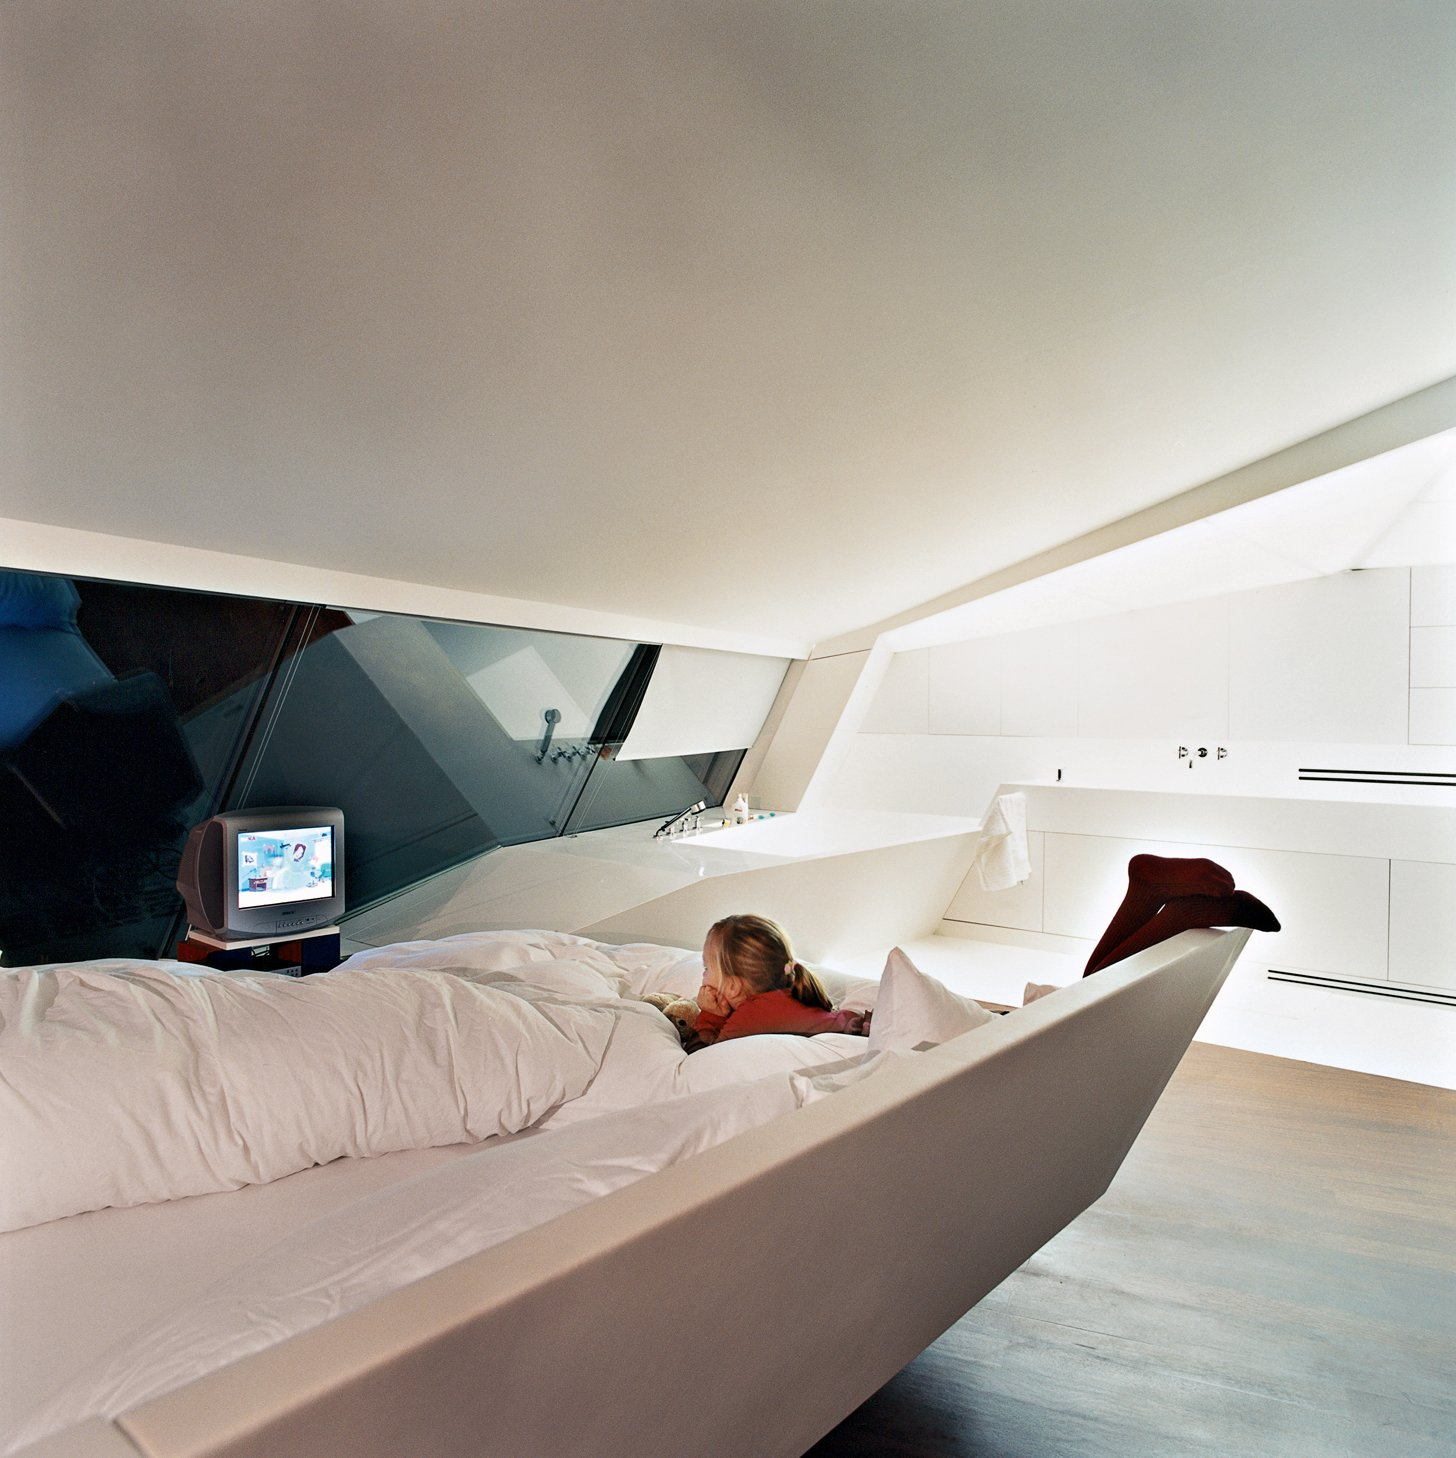 Converging lines of sheer glass, sloping floors, and ceiling planes create the impression of multiple perspectives and vanishing points. There are no interior walls except for those around the bedrooms (as seen here, in the master).